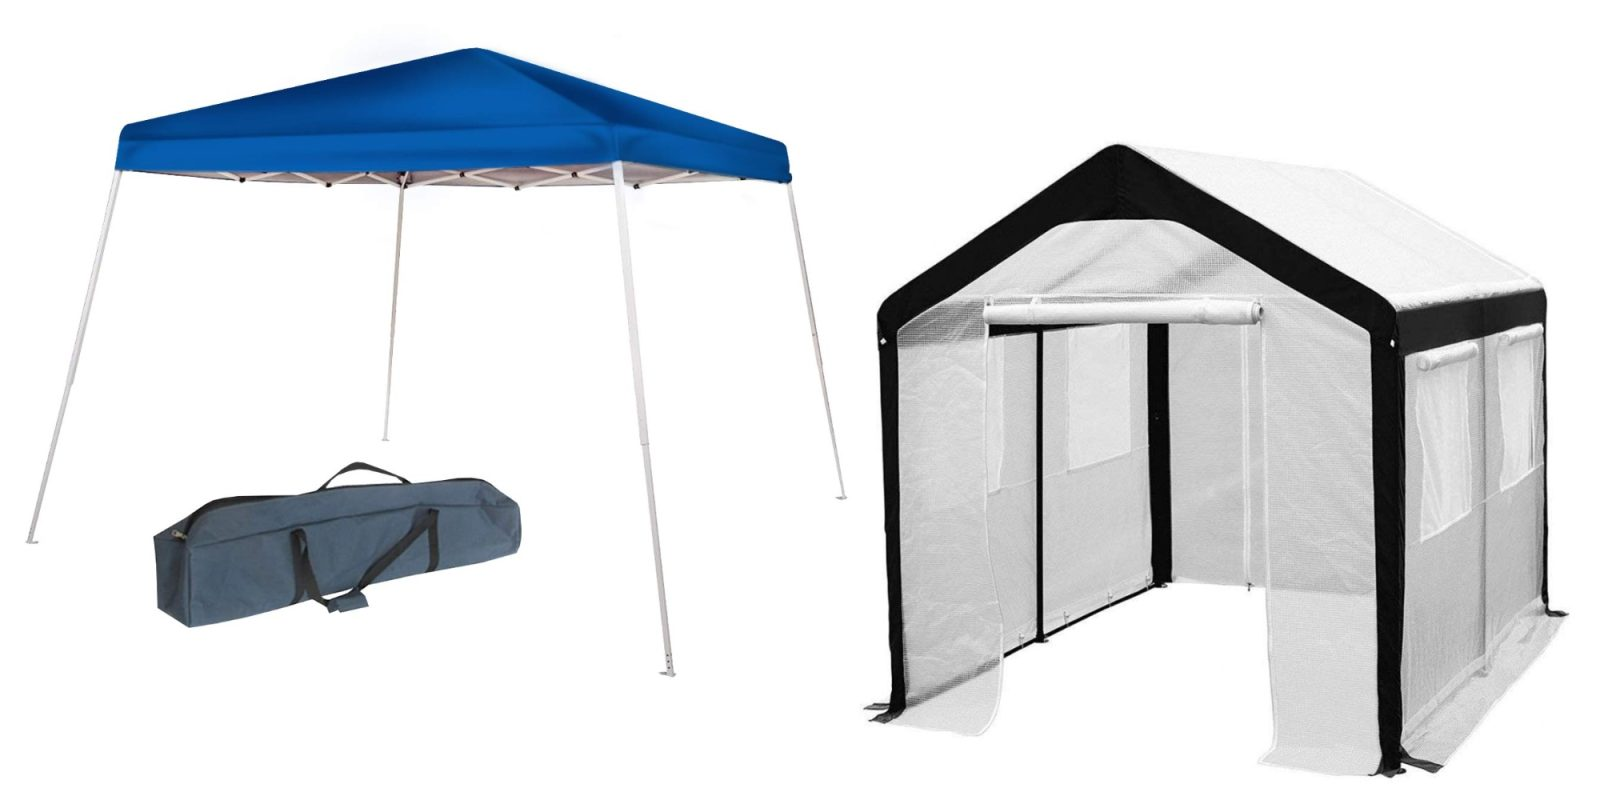 Amazon gets you ready for tailgating season with canopies